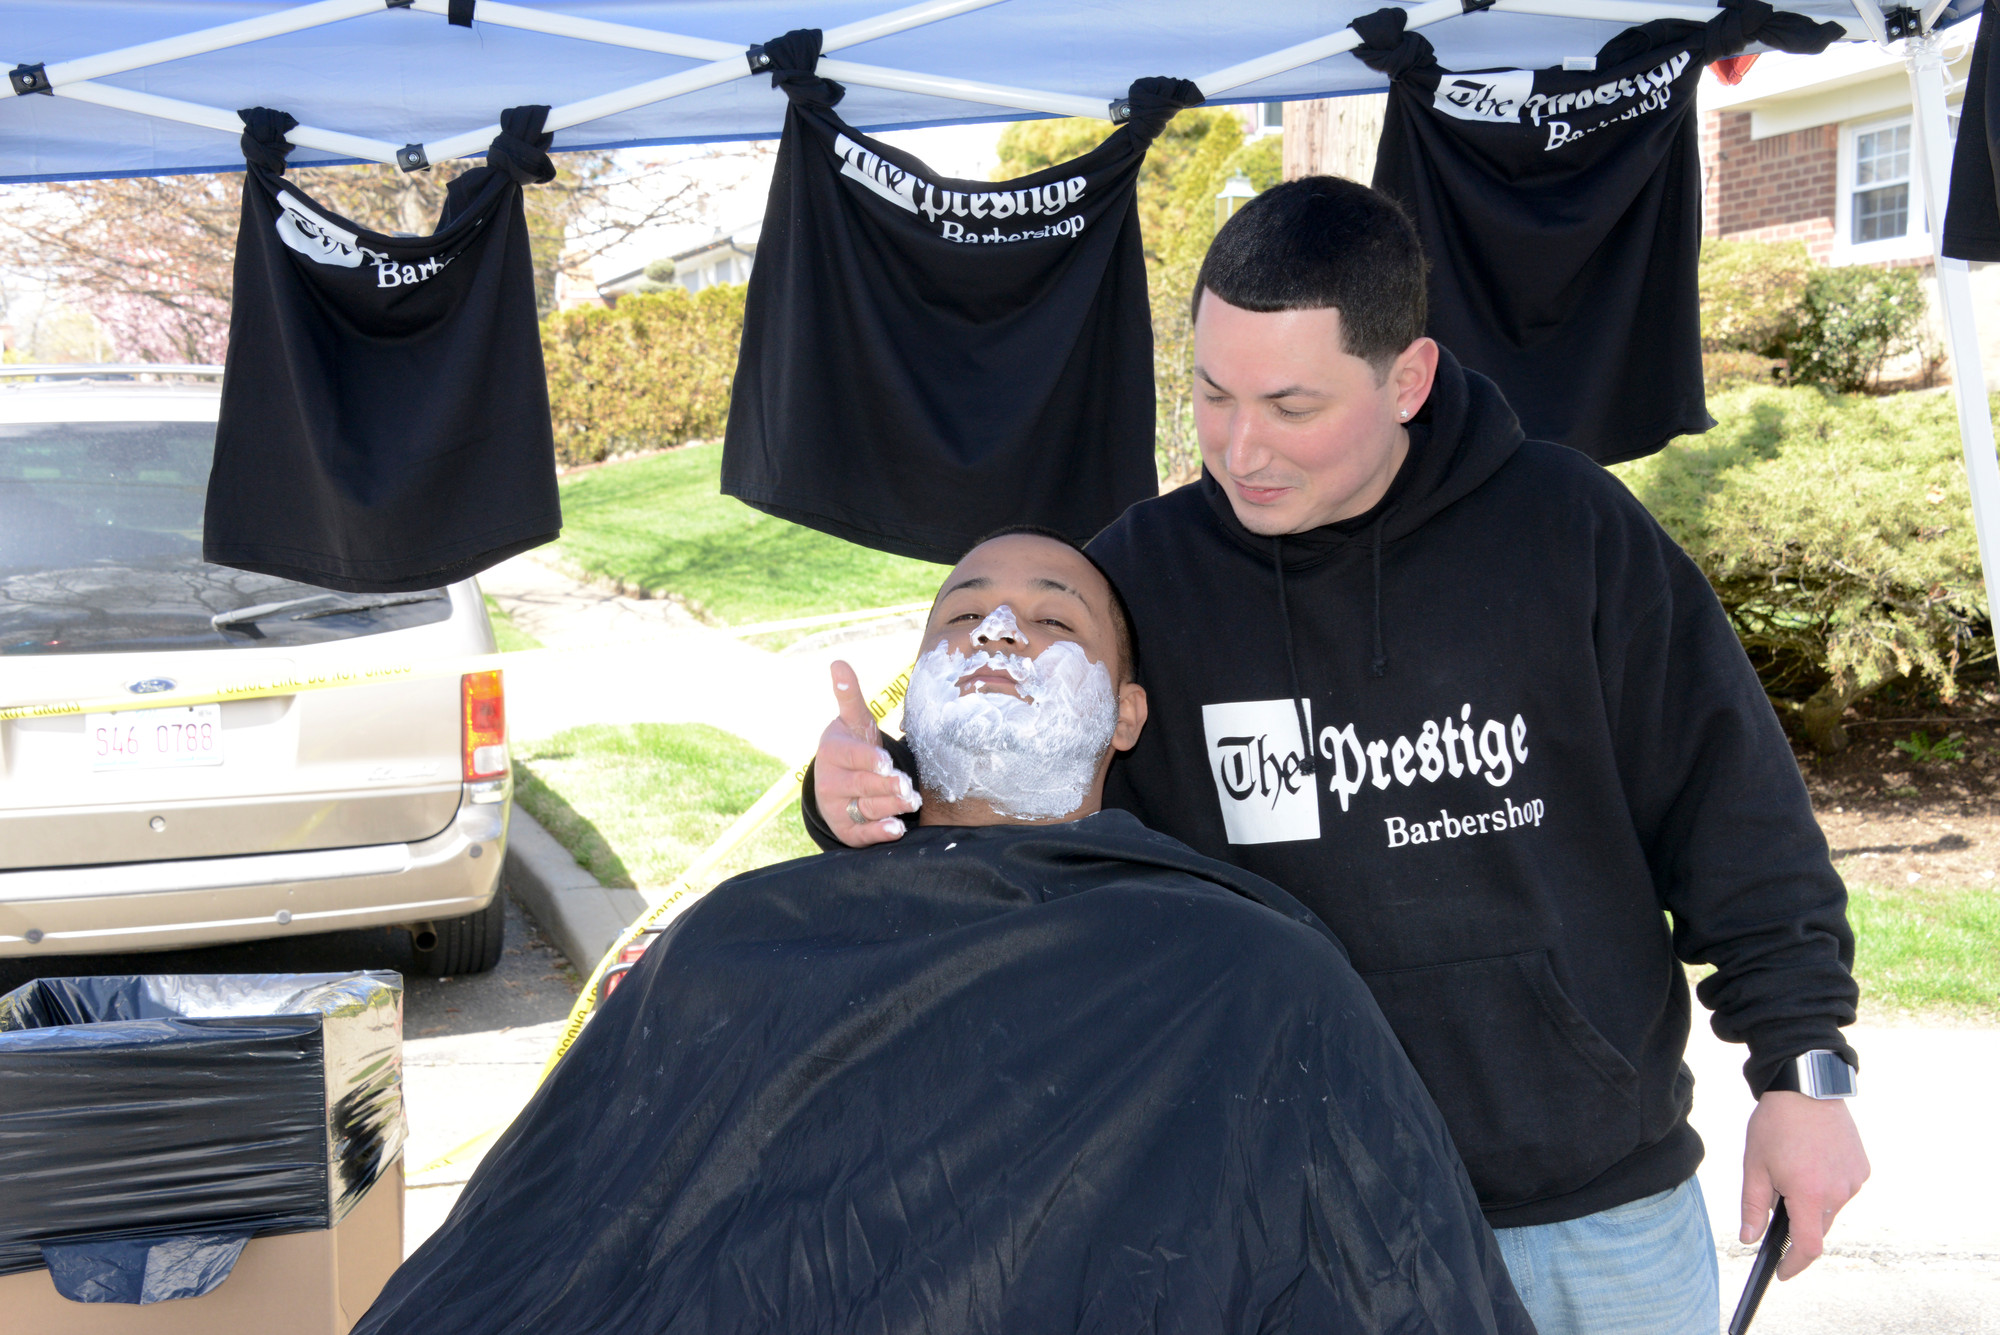 Prestige Barbershop Owner Alex Alvarado gave Jordan Alzate a free shave and haircut at the West Hempstead Lions Club Street Fair last Sunday.